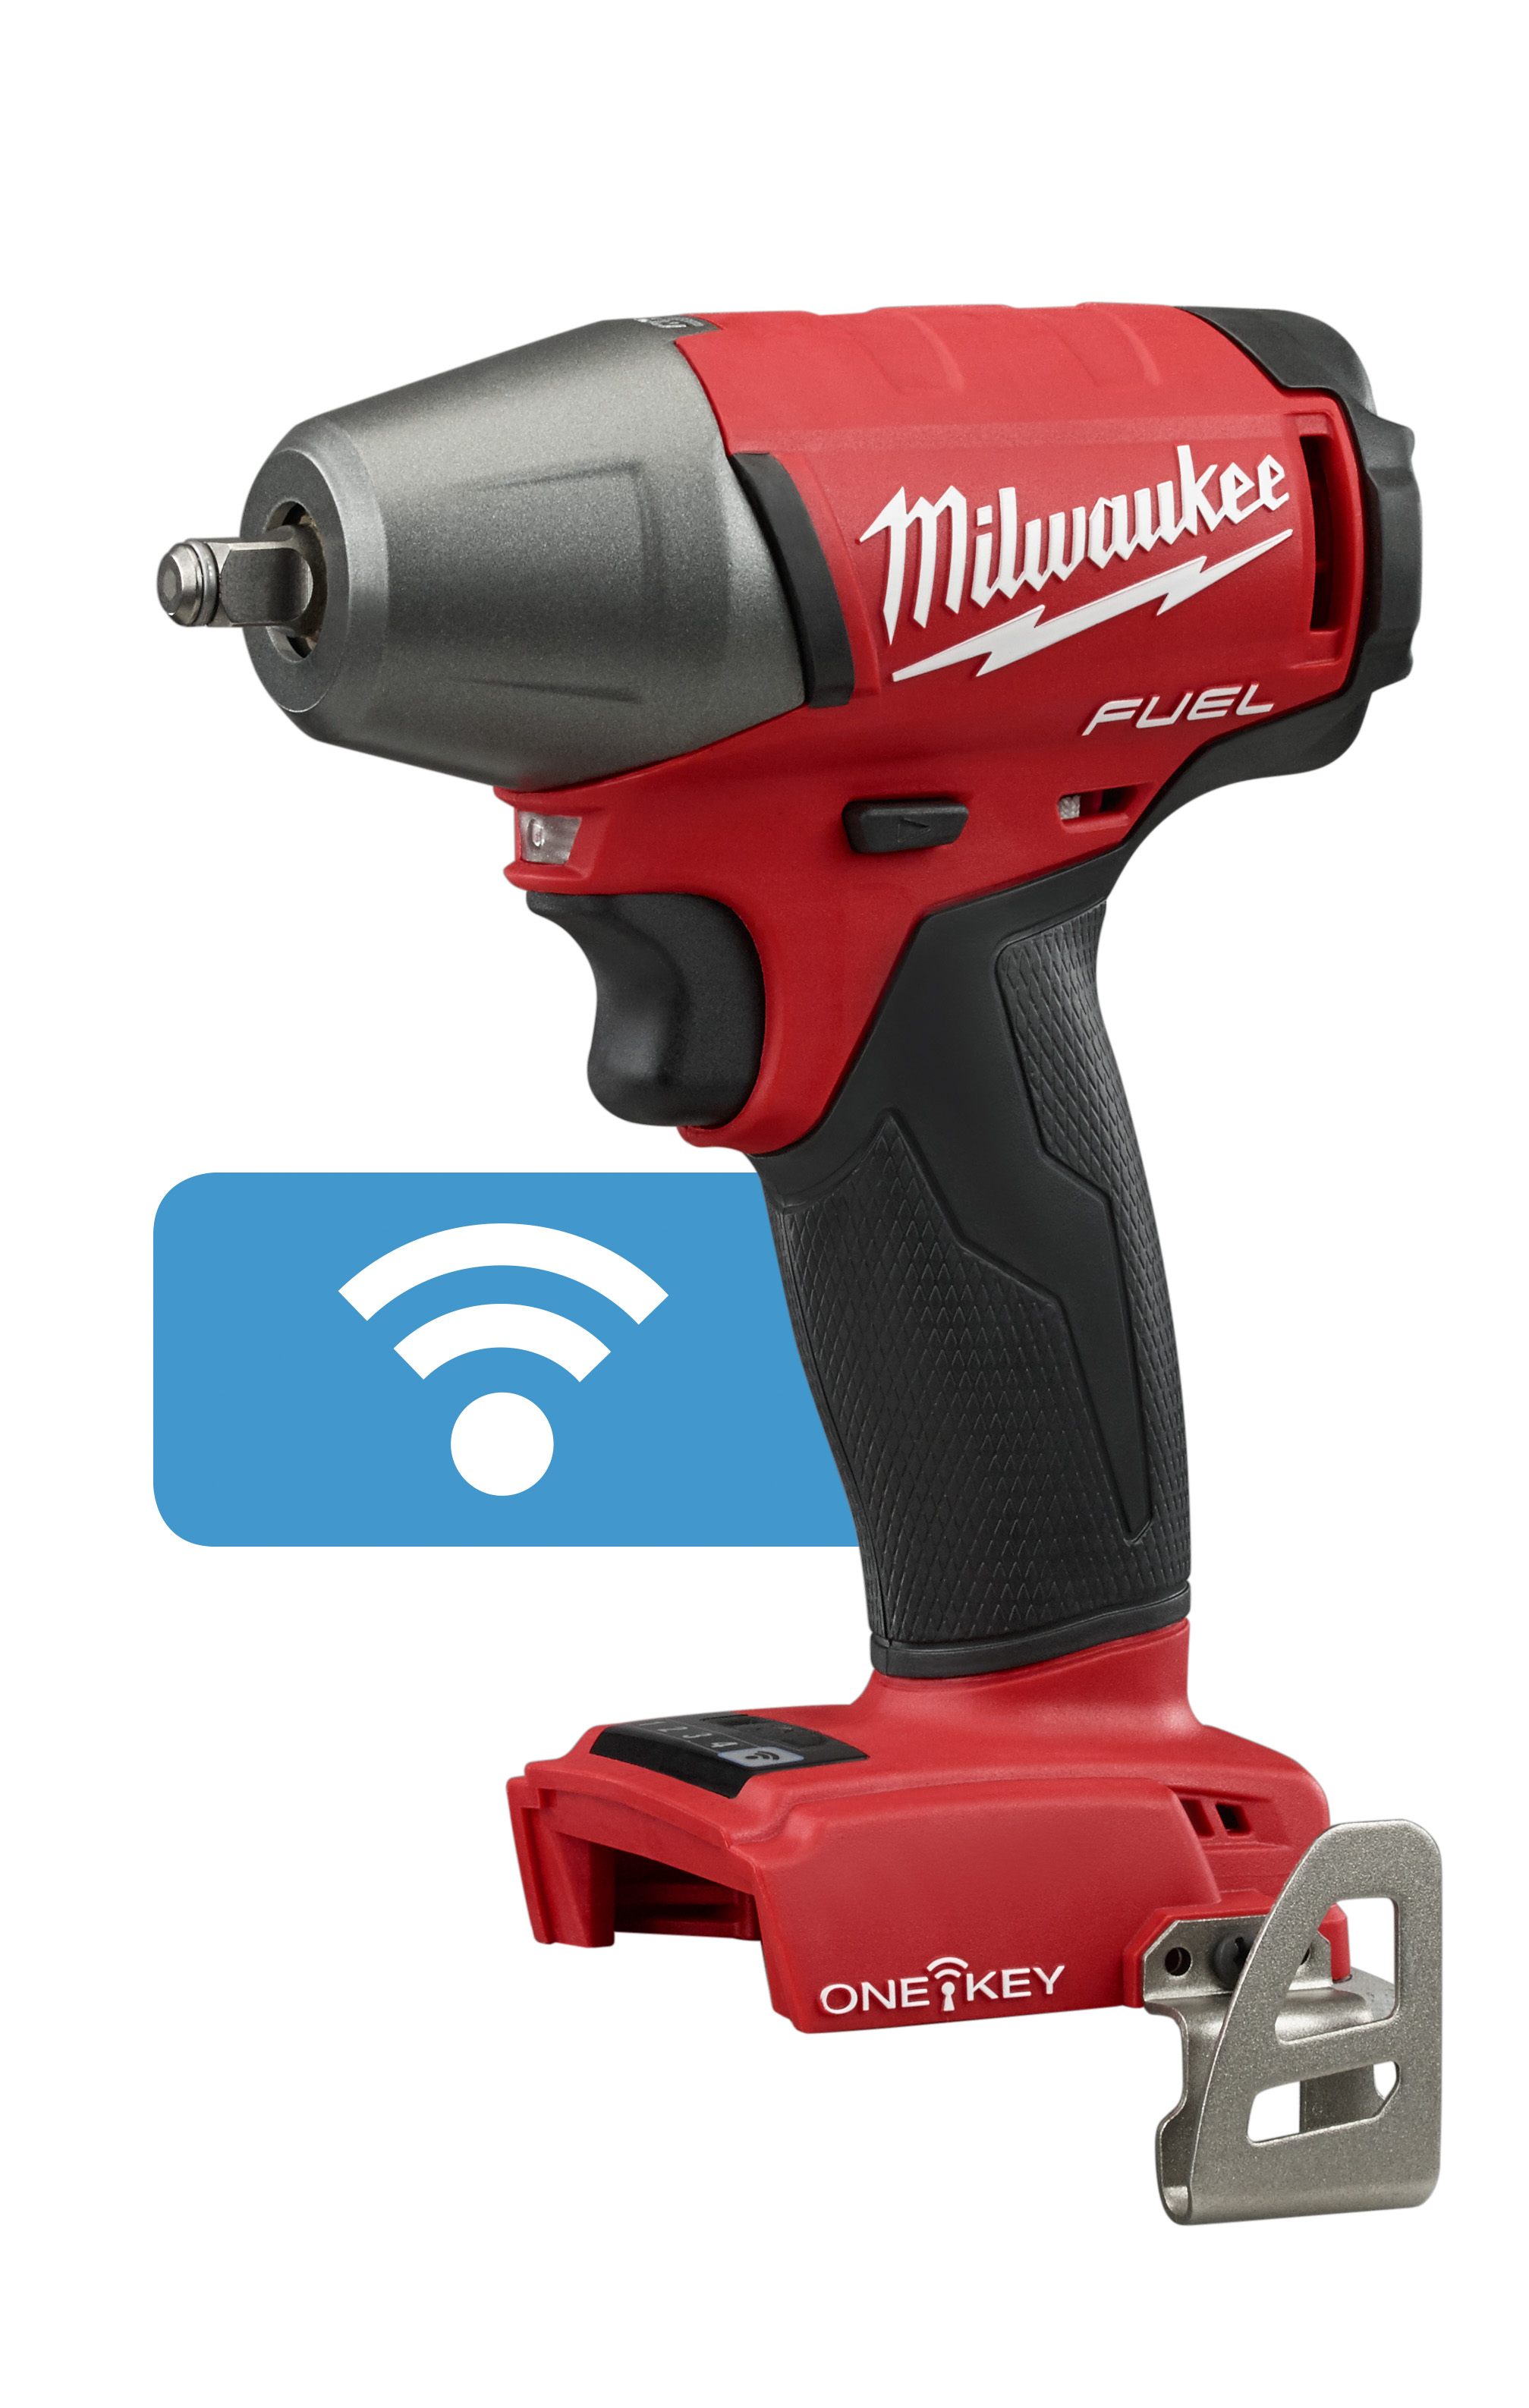 Milwaukee® M18™ FUEL™ 2758-20 Compact Cordless Impact Wrench With Friction Ring, 3/8 in Straight Drive, 0 to 3200 bpm, 210 ft-lb Torque, 18 VDC, 5.9 in OAL